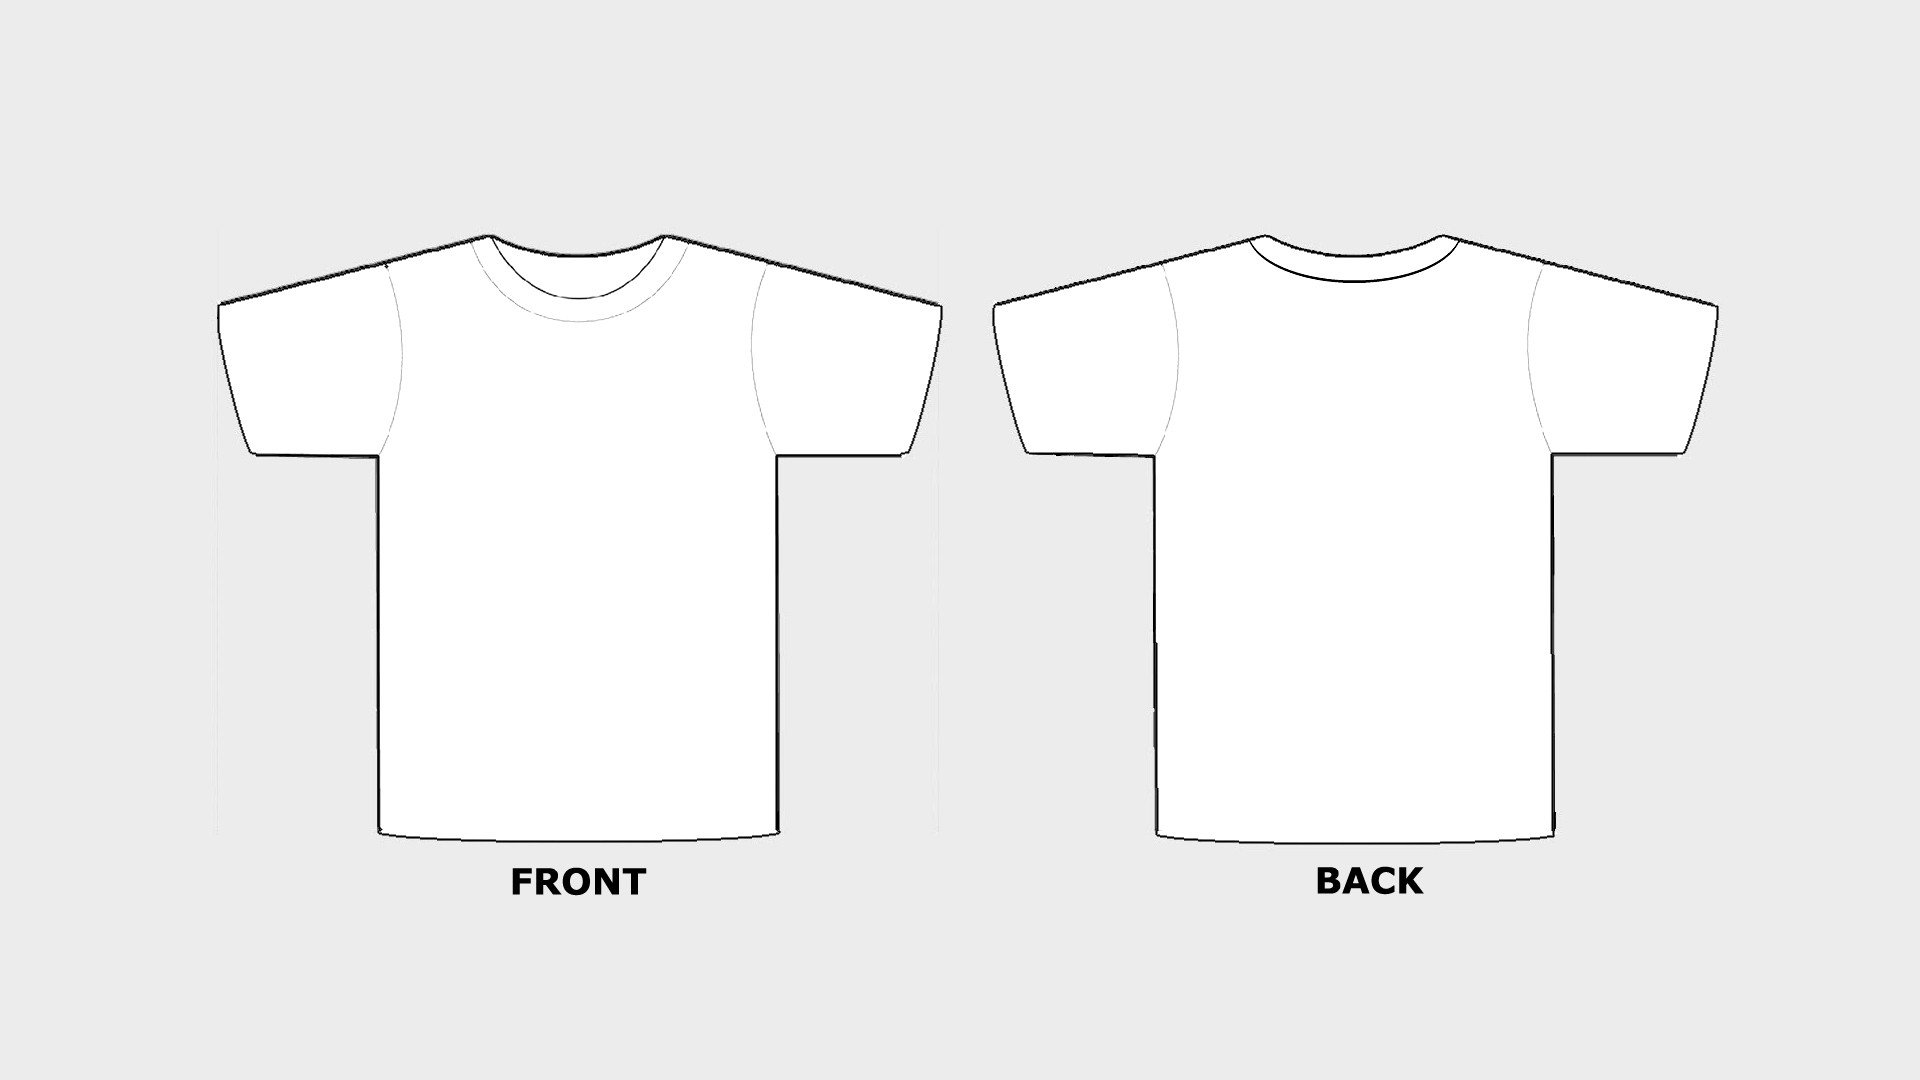 T Shirt Template Design Blank Tshirt Template Printable In Hd Hd Wallpapers